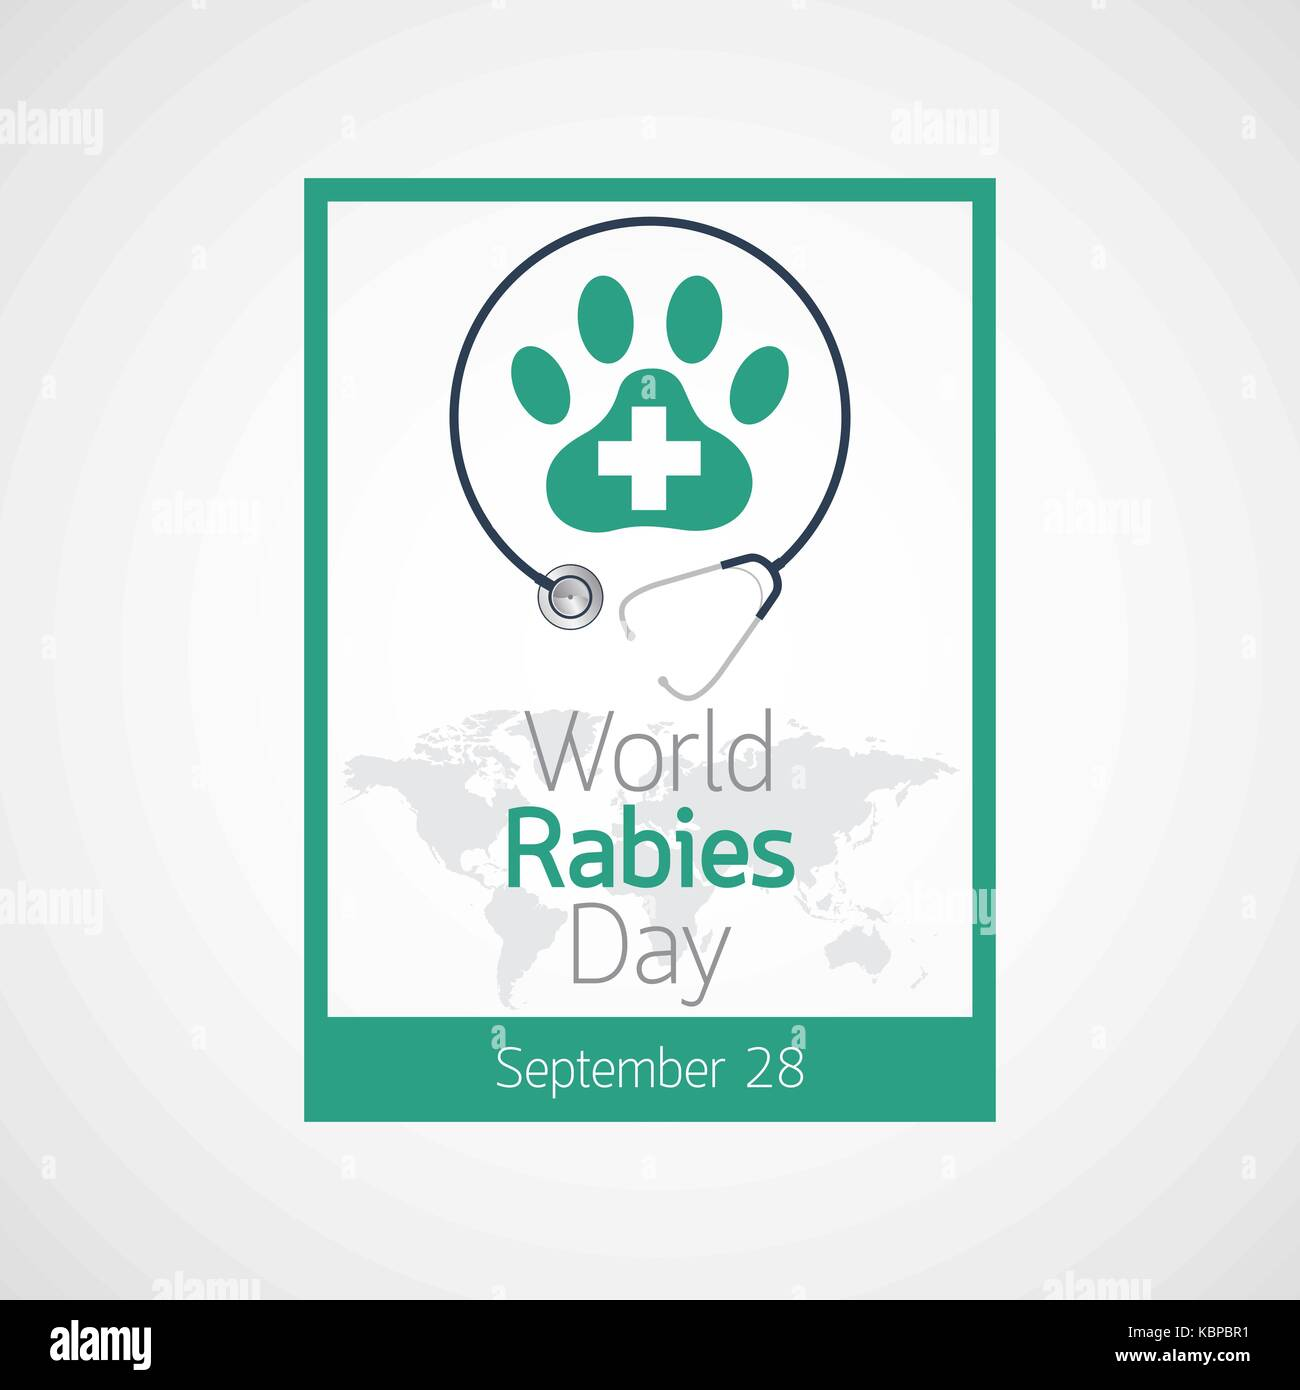 World Rabies Day vector icon illustration - Stock Image